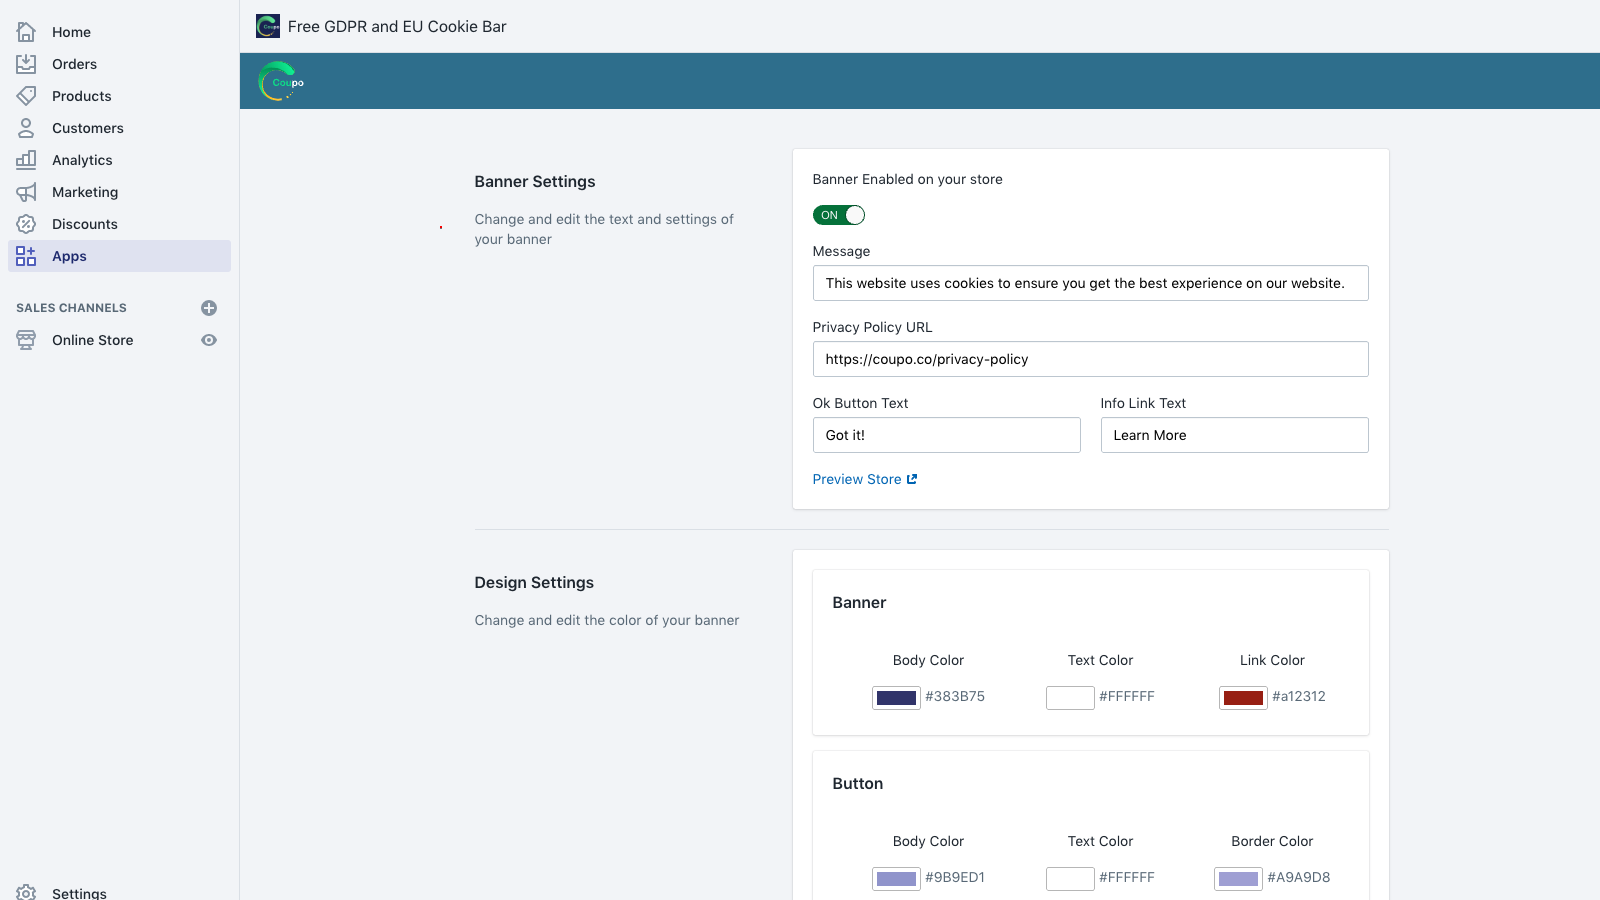 Create a GDPR compliant cookie bar with ease